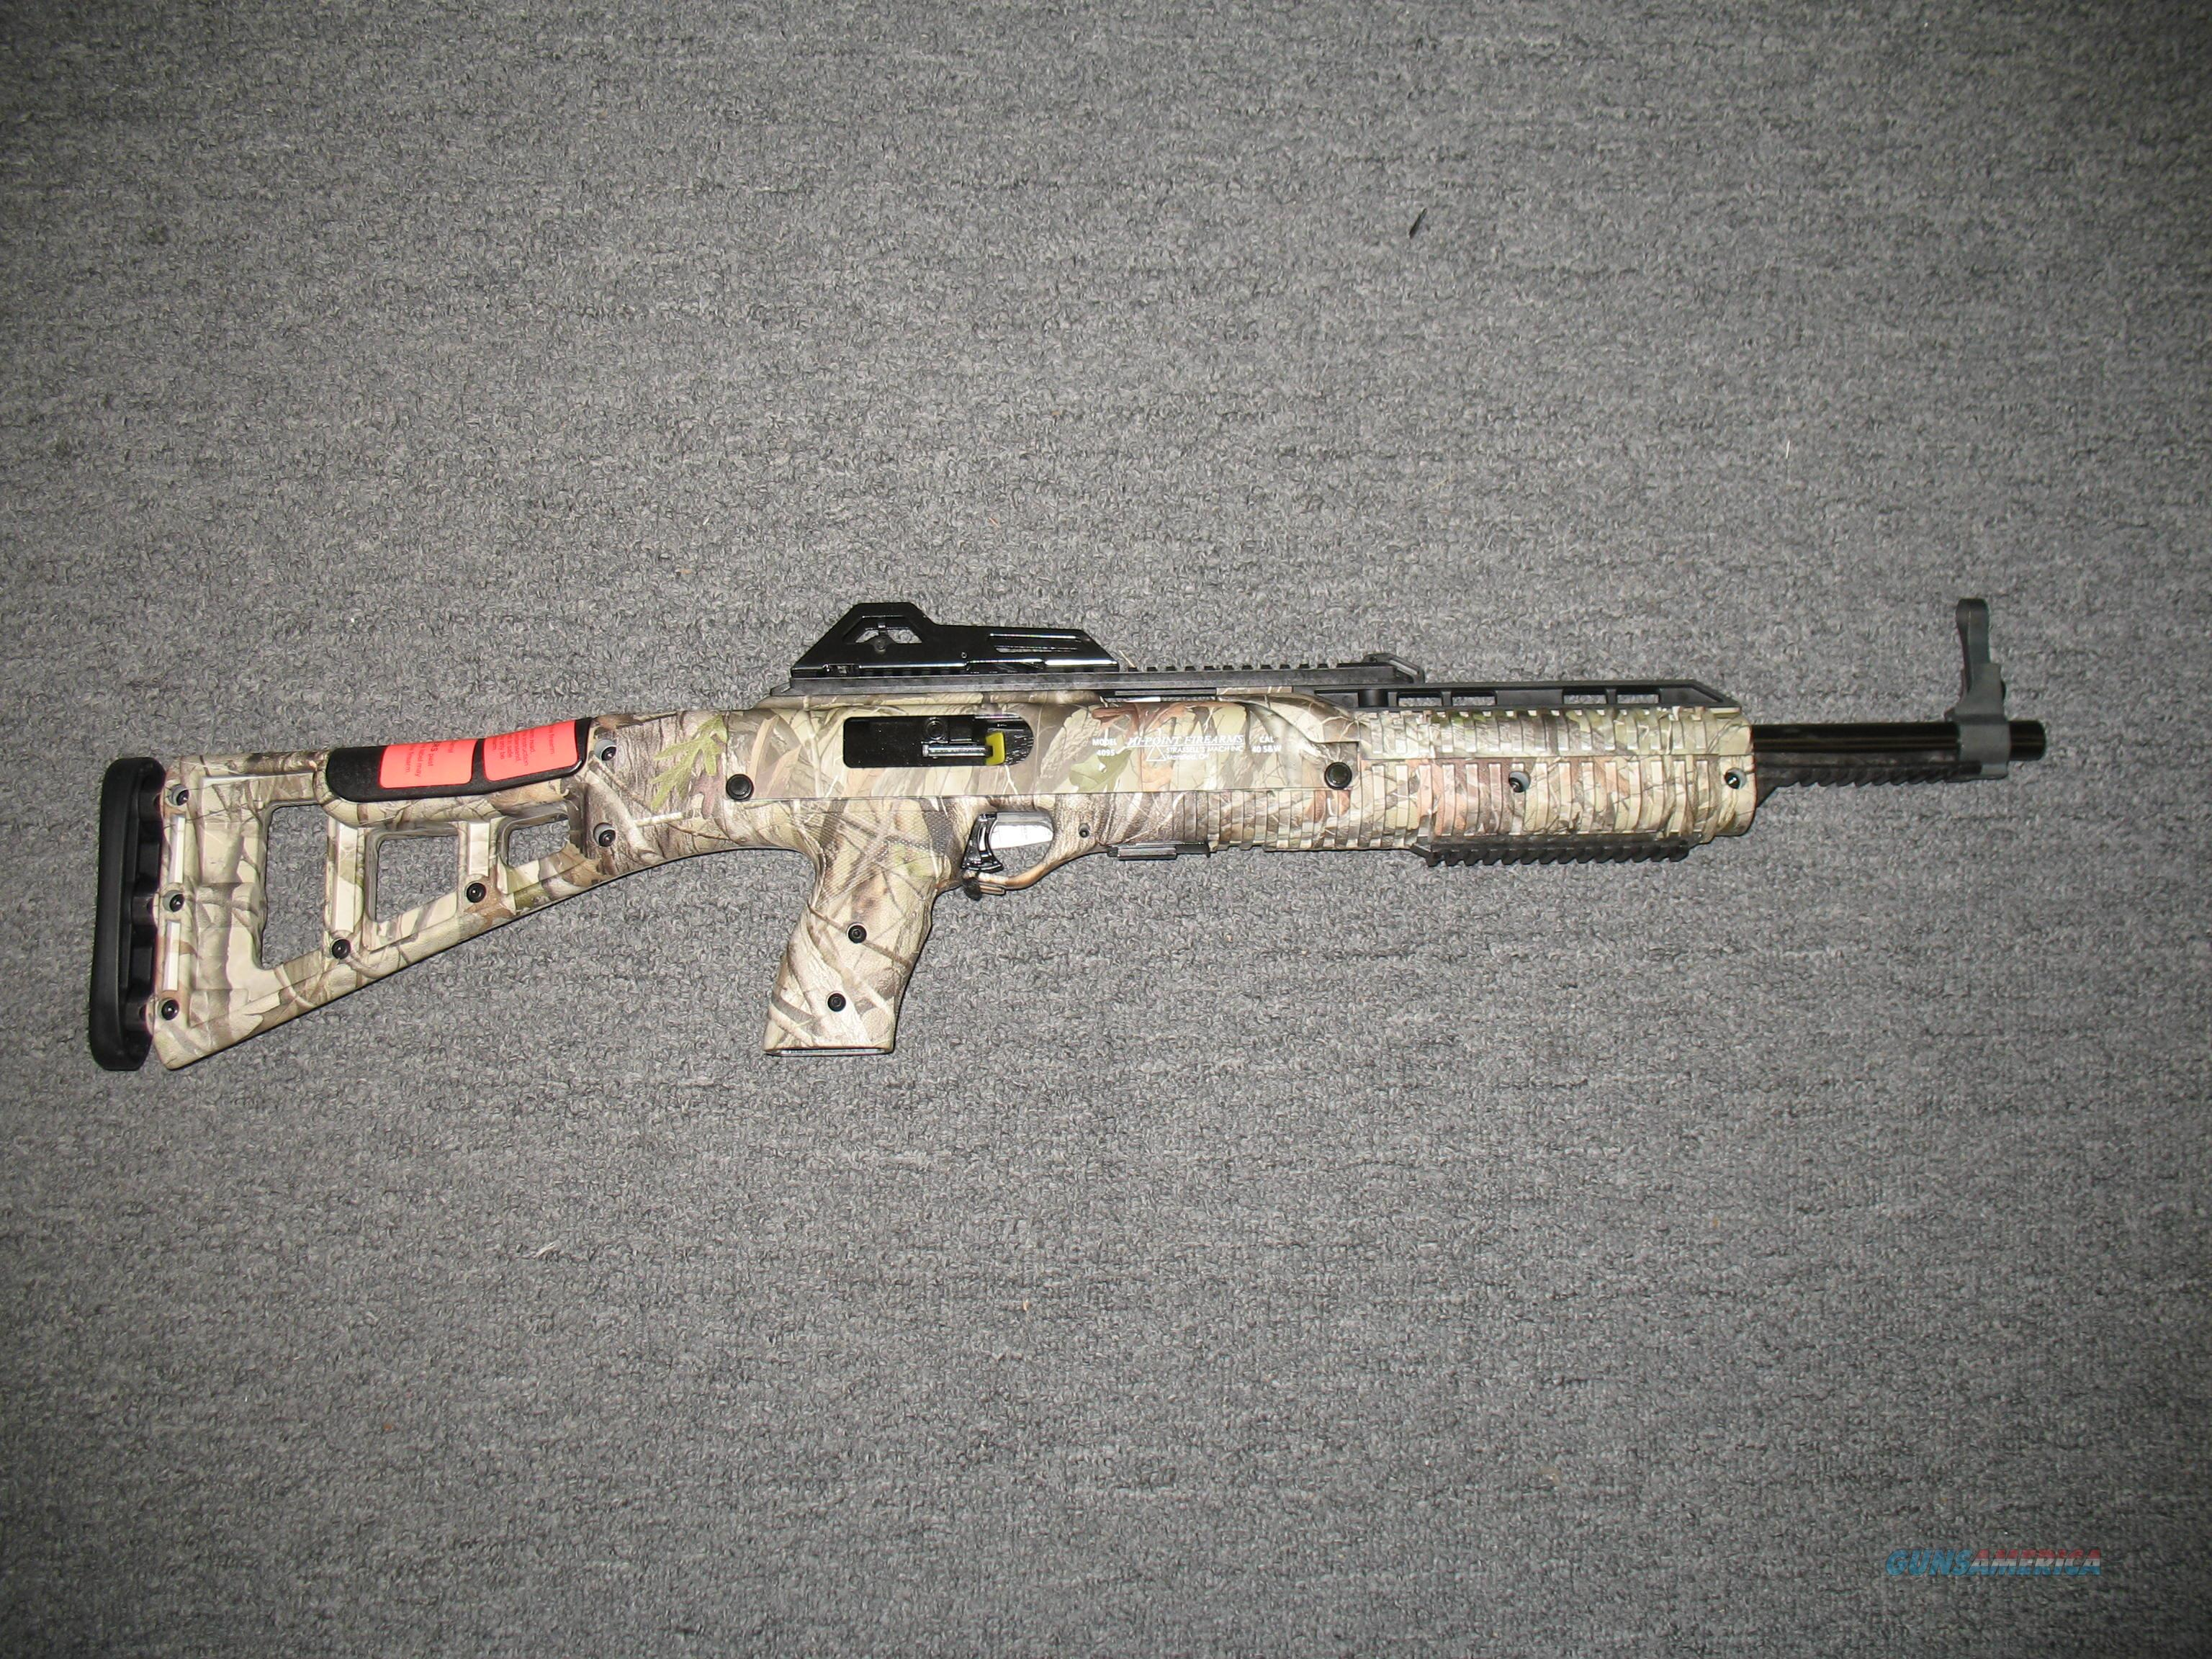 4095 w/sling and hardwoods camo finish  Guns > Rifles > Hi Point Rifles